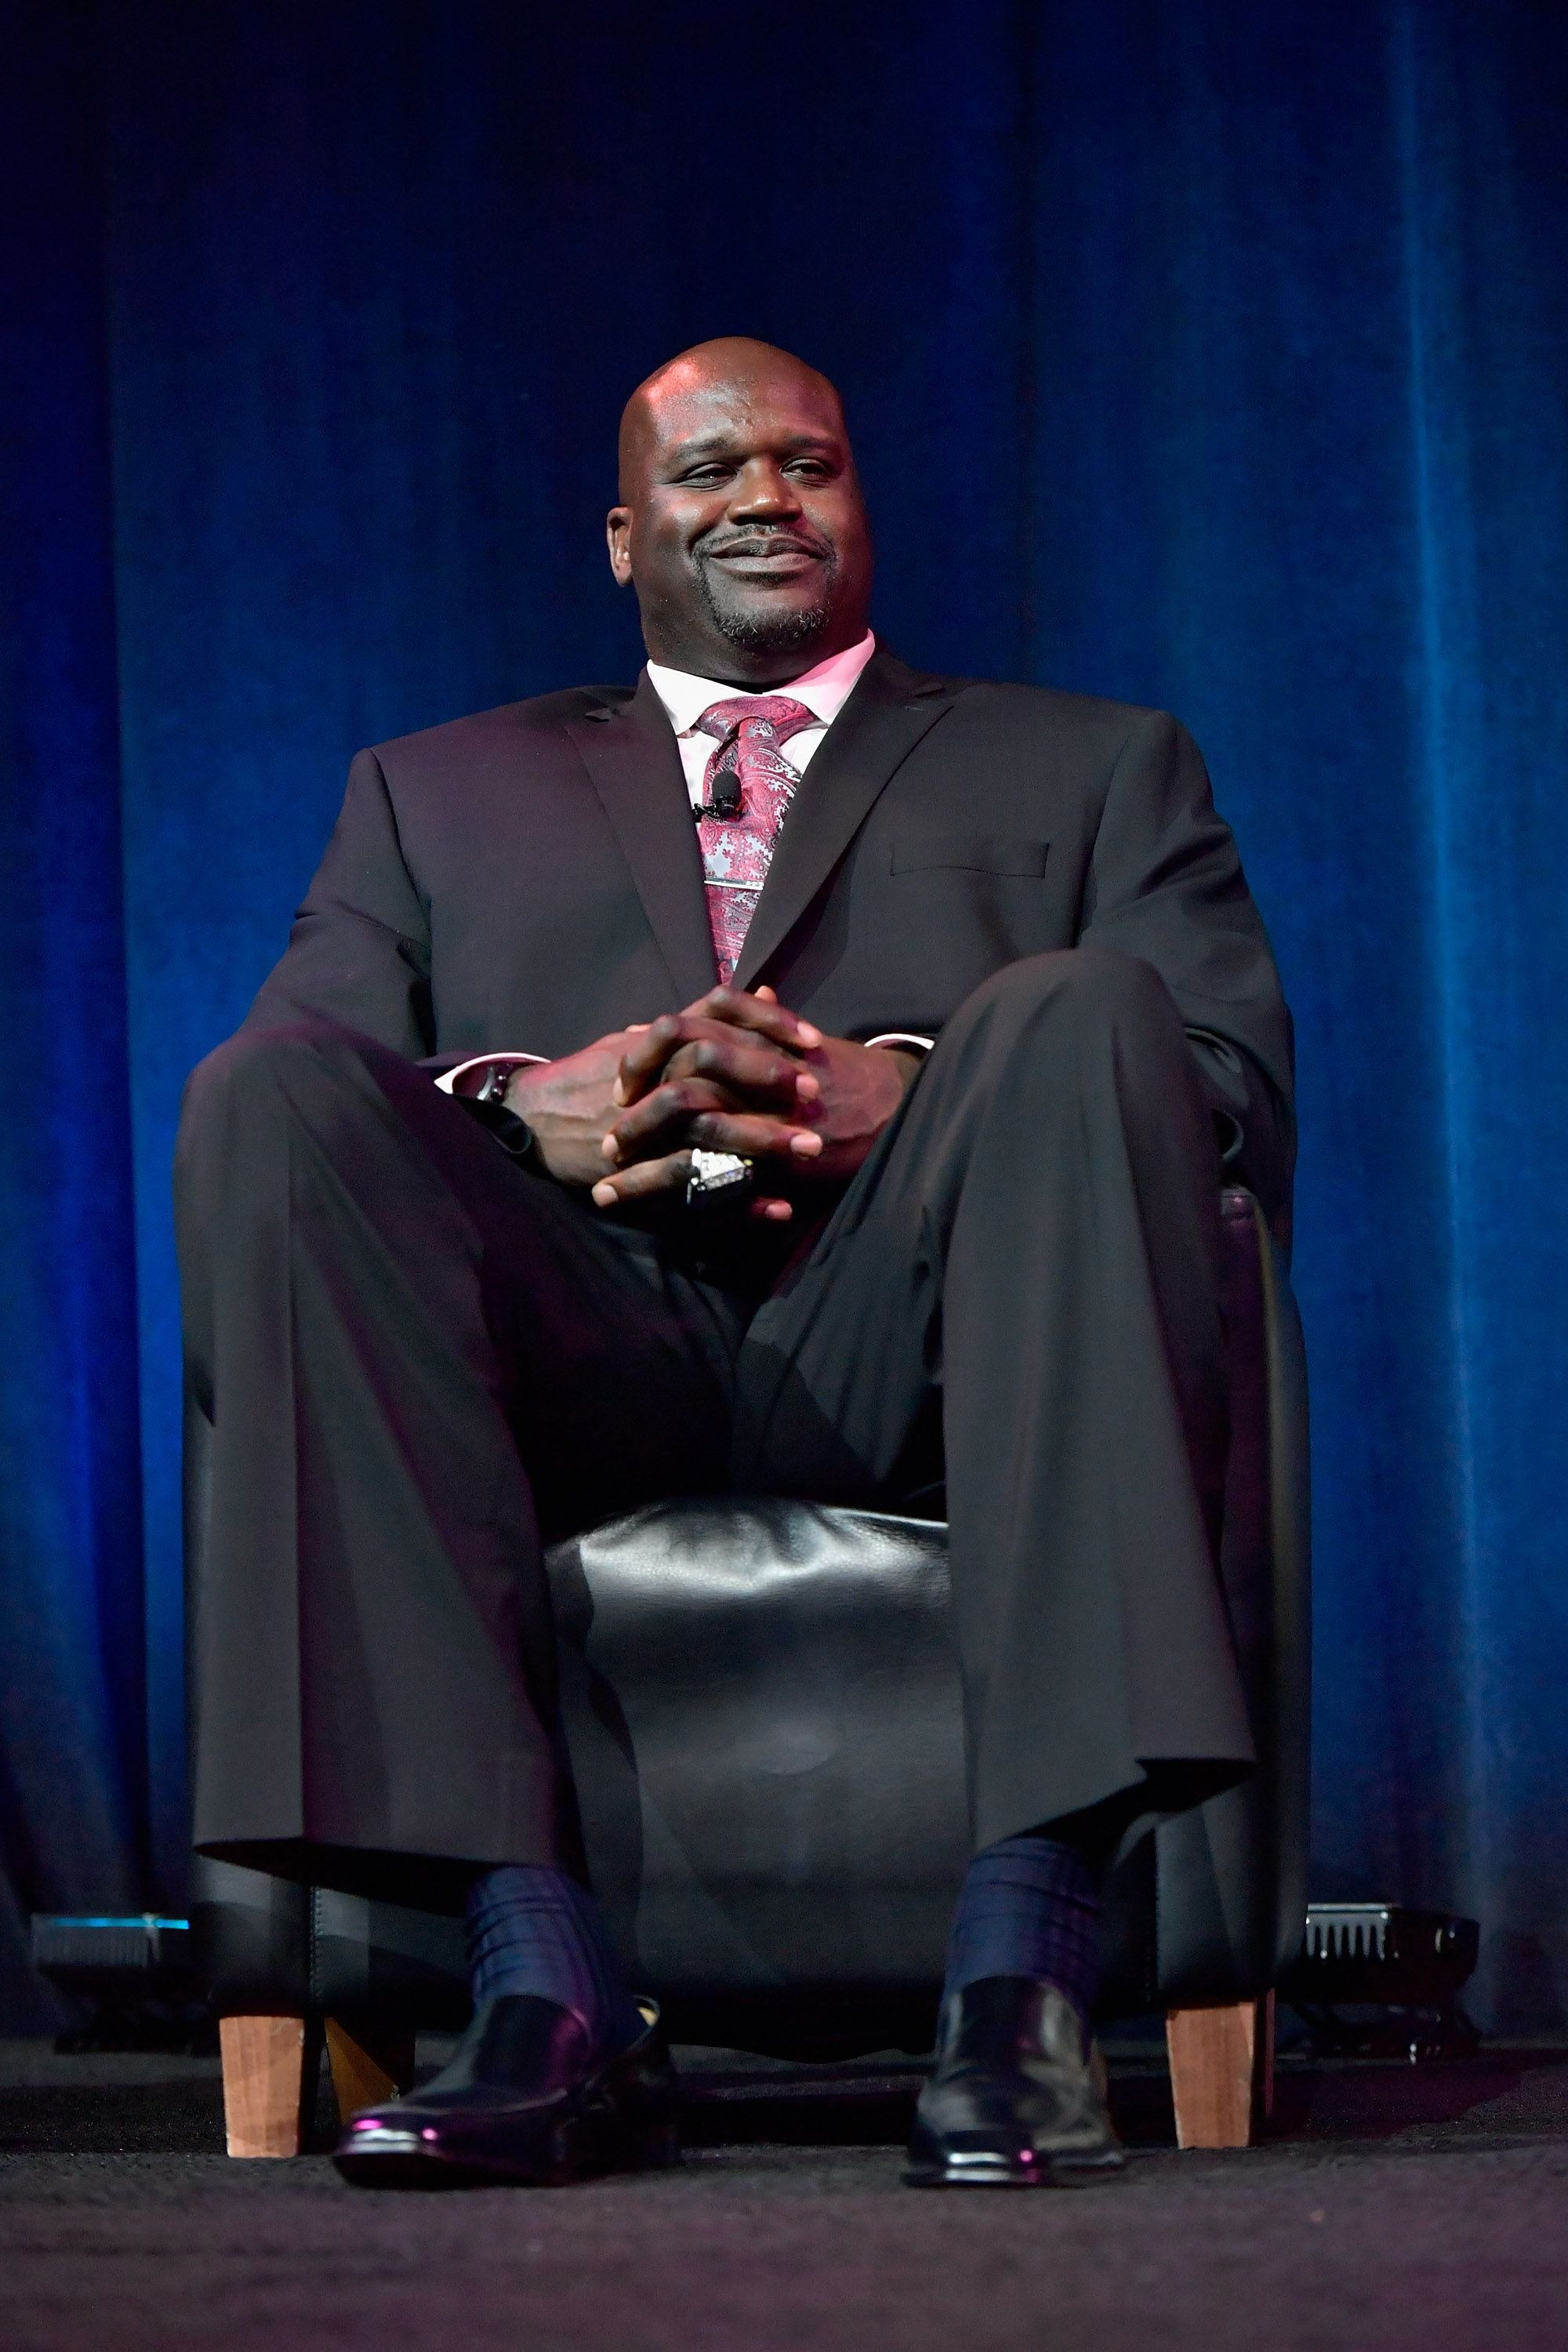 Shaquille O'Neal receives the Basketball Legacy Award at the 15th Annual Sports Museum Tradition Awards Ceremony at TD Garden on November 29, 2016 in Boston, Massachusetts.   Source: Getty Images